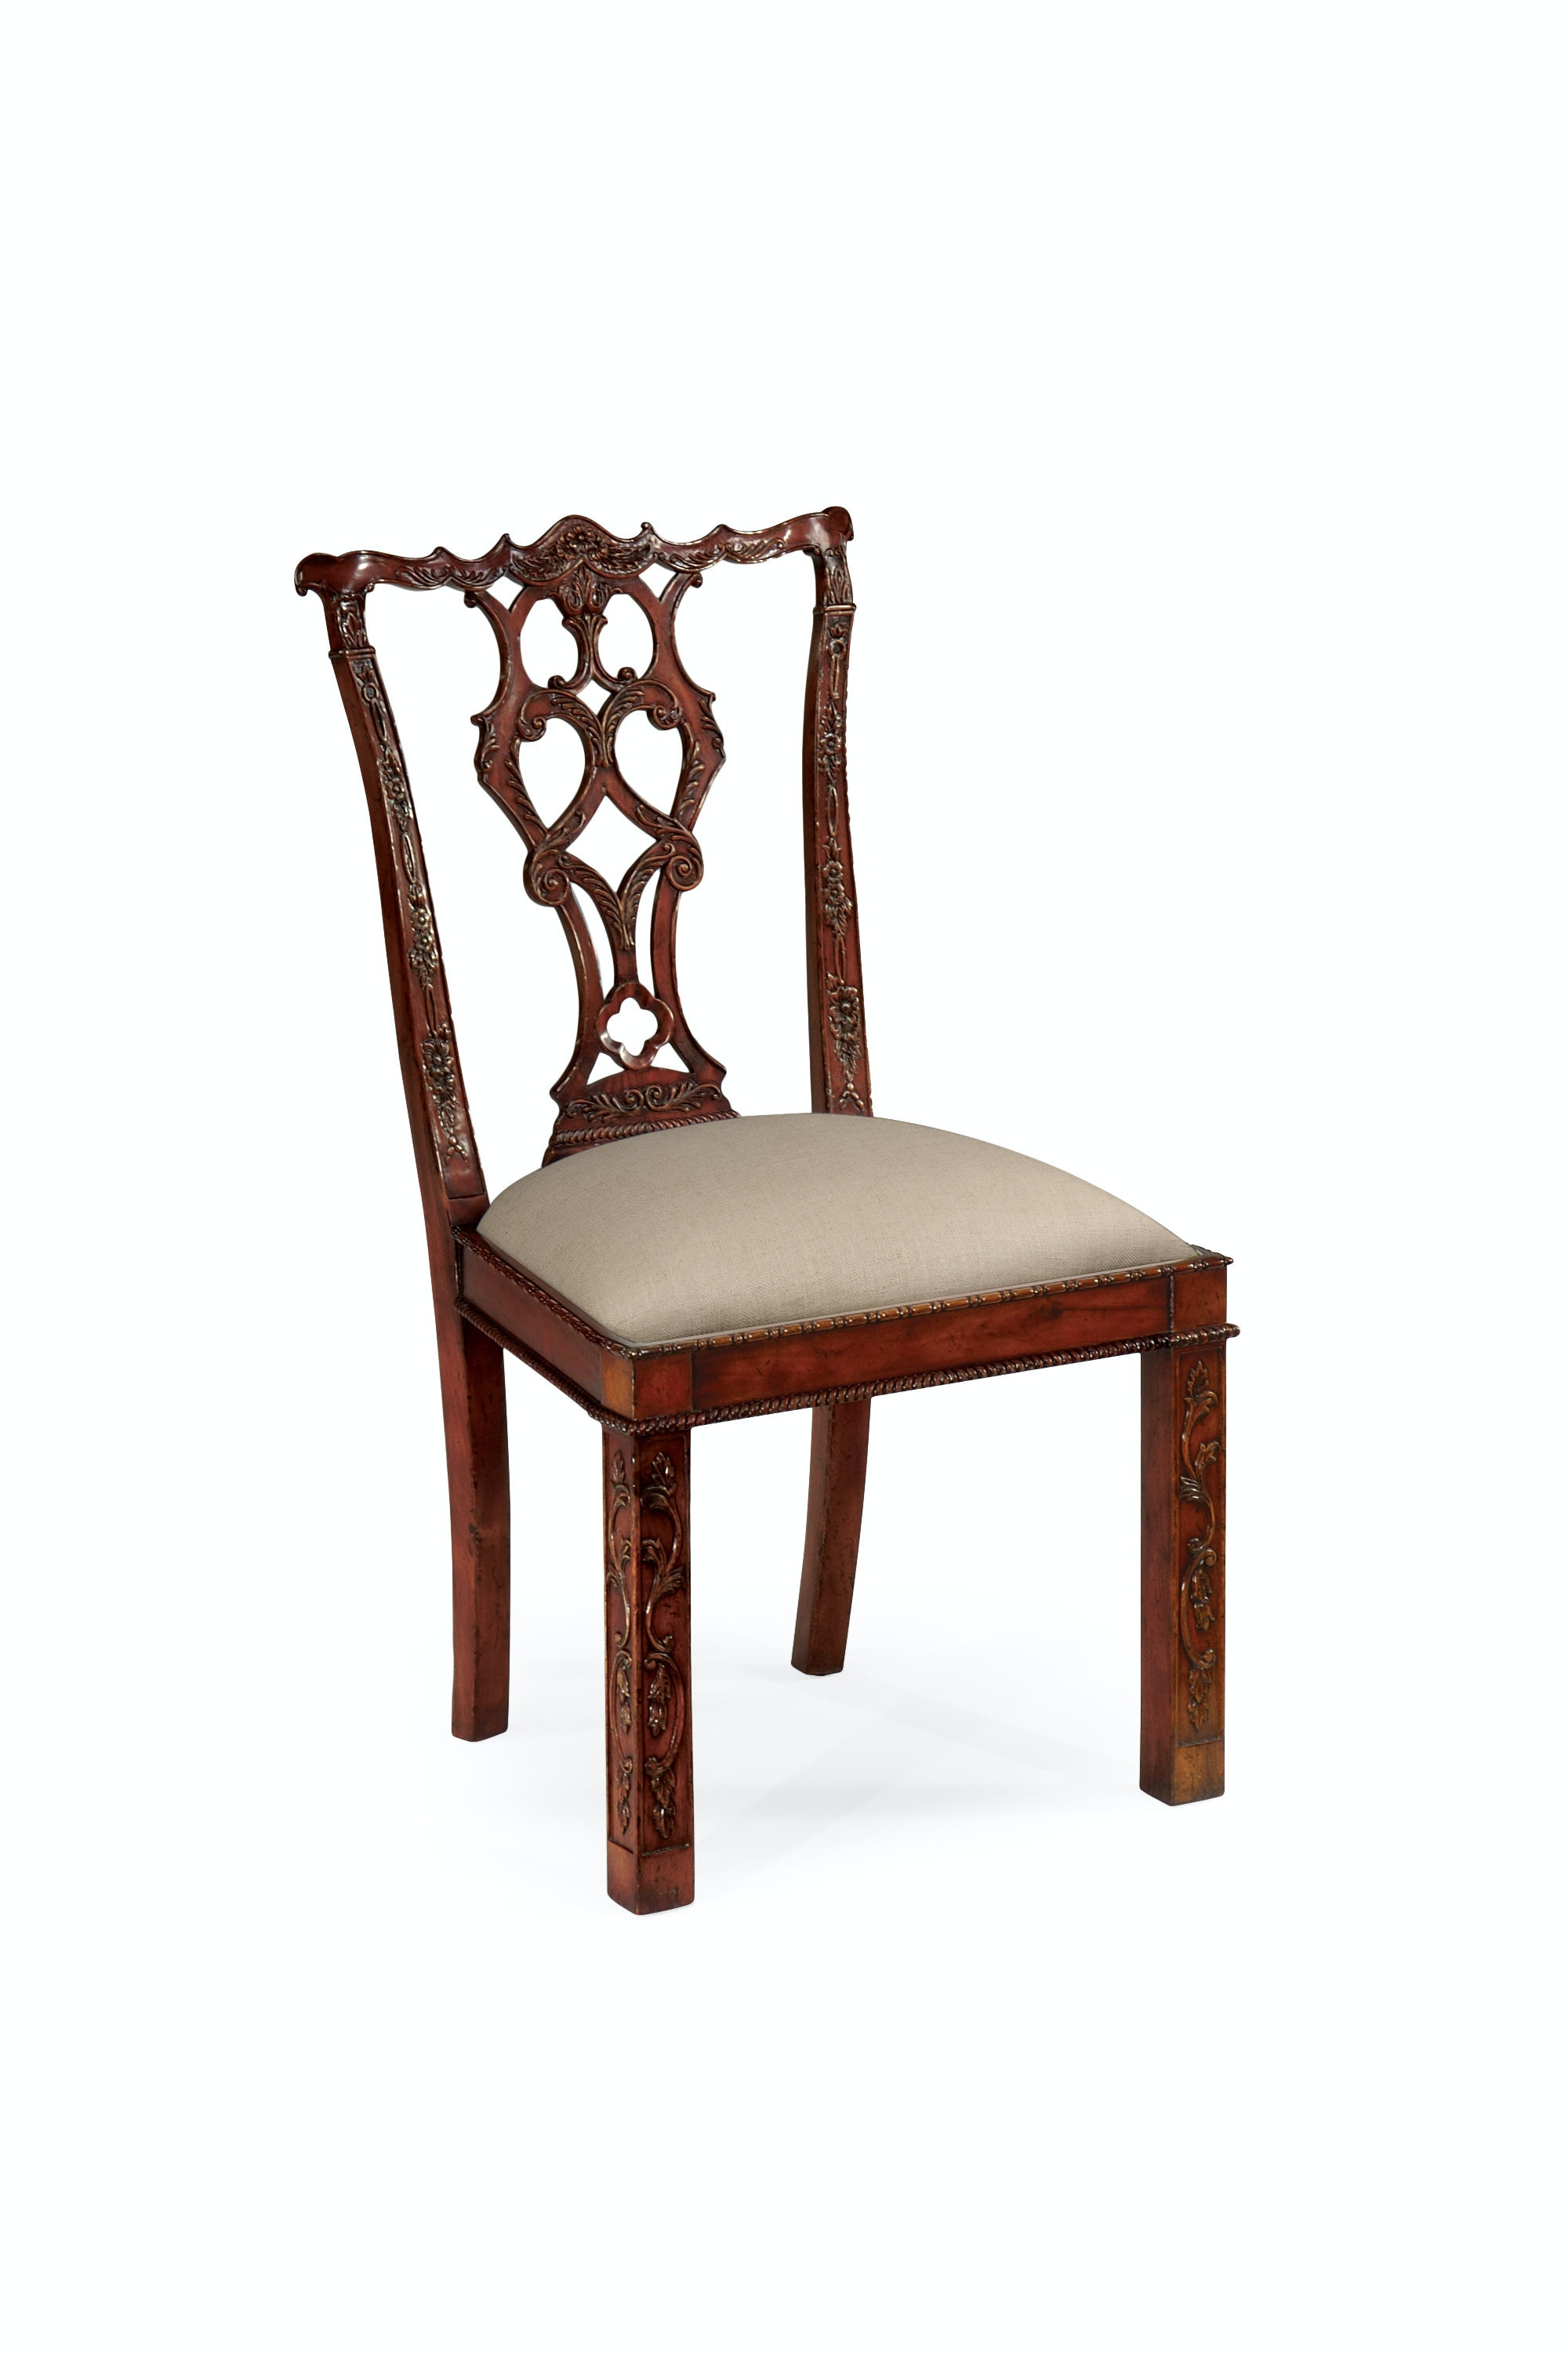 Charming Jonathan Charles Chippendale Style Rococo Quatrefoil Chair (Side)  QJ492472SCMAHF001 From Walter E. Smithe